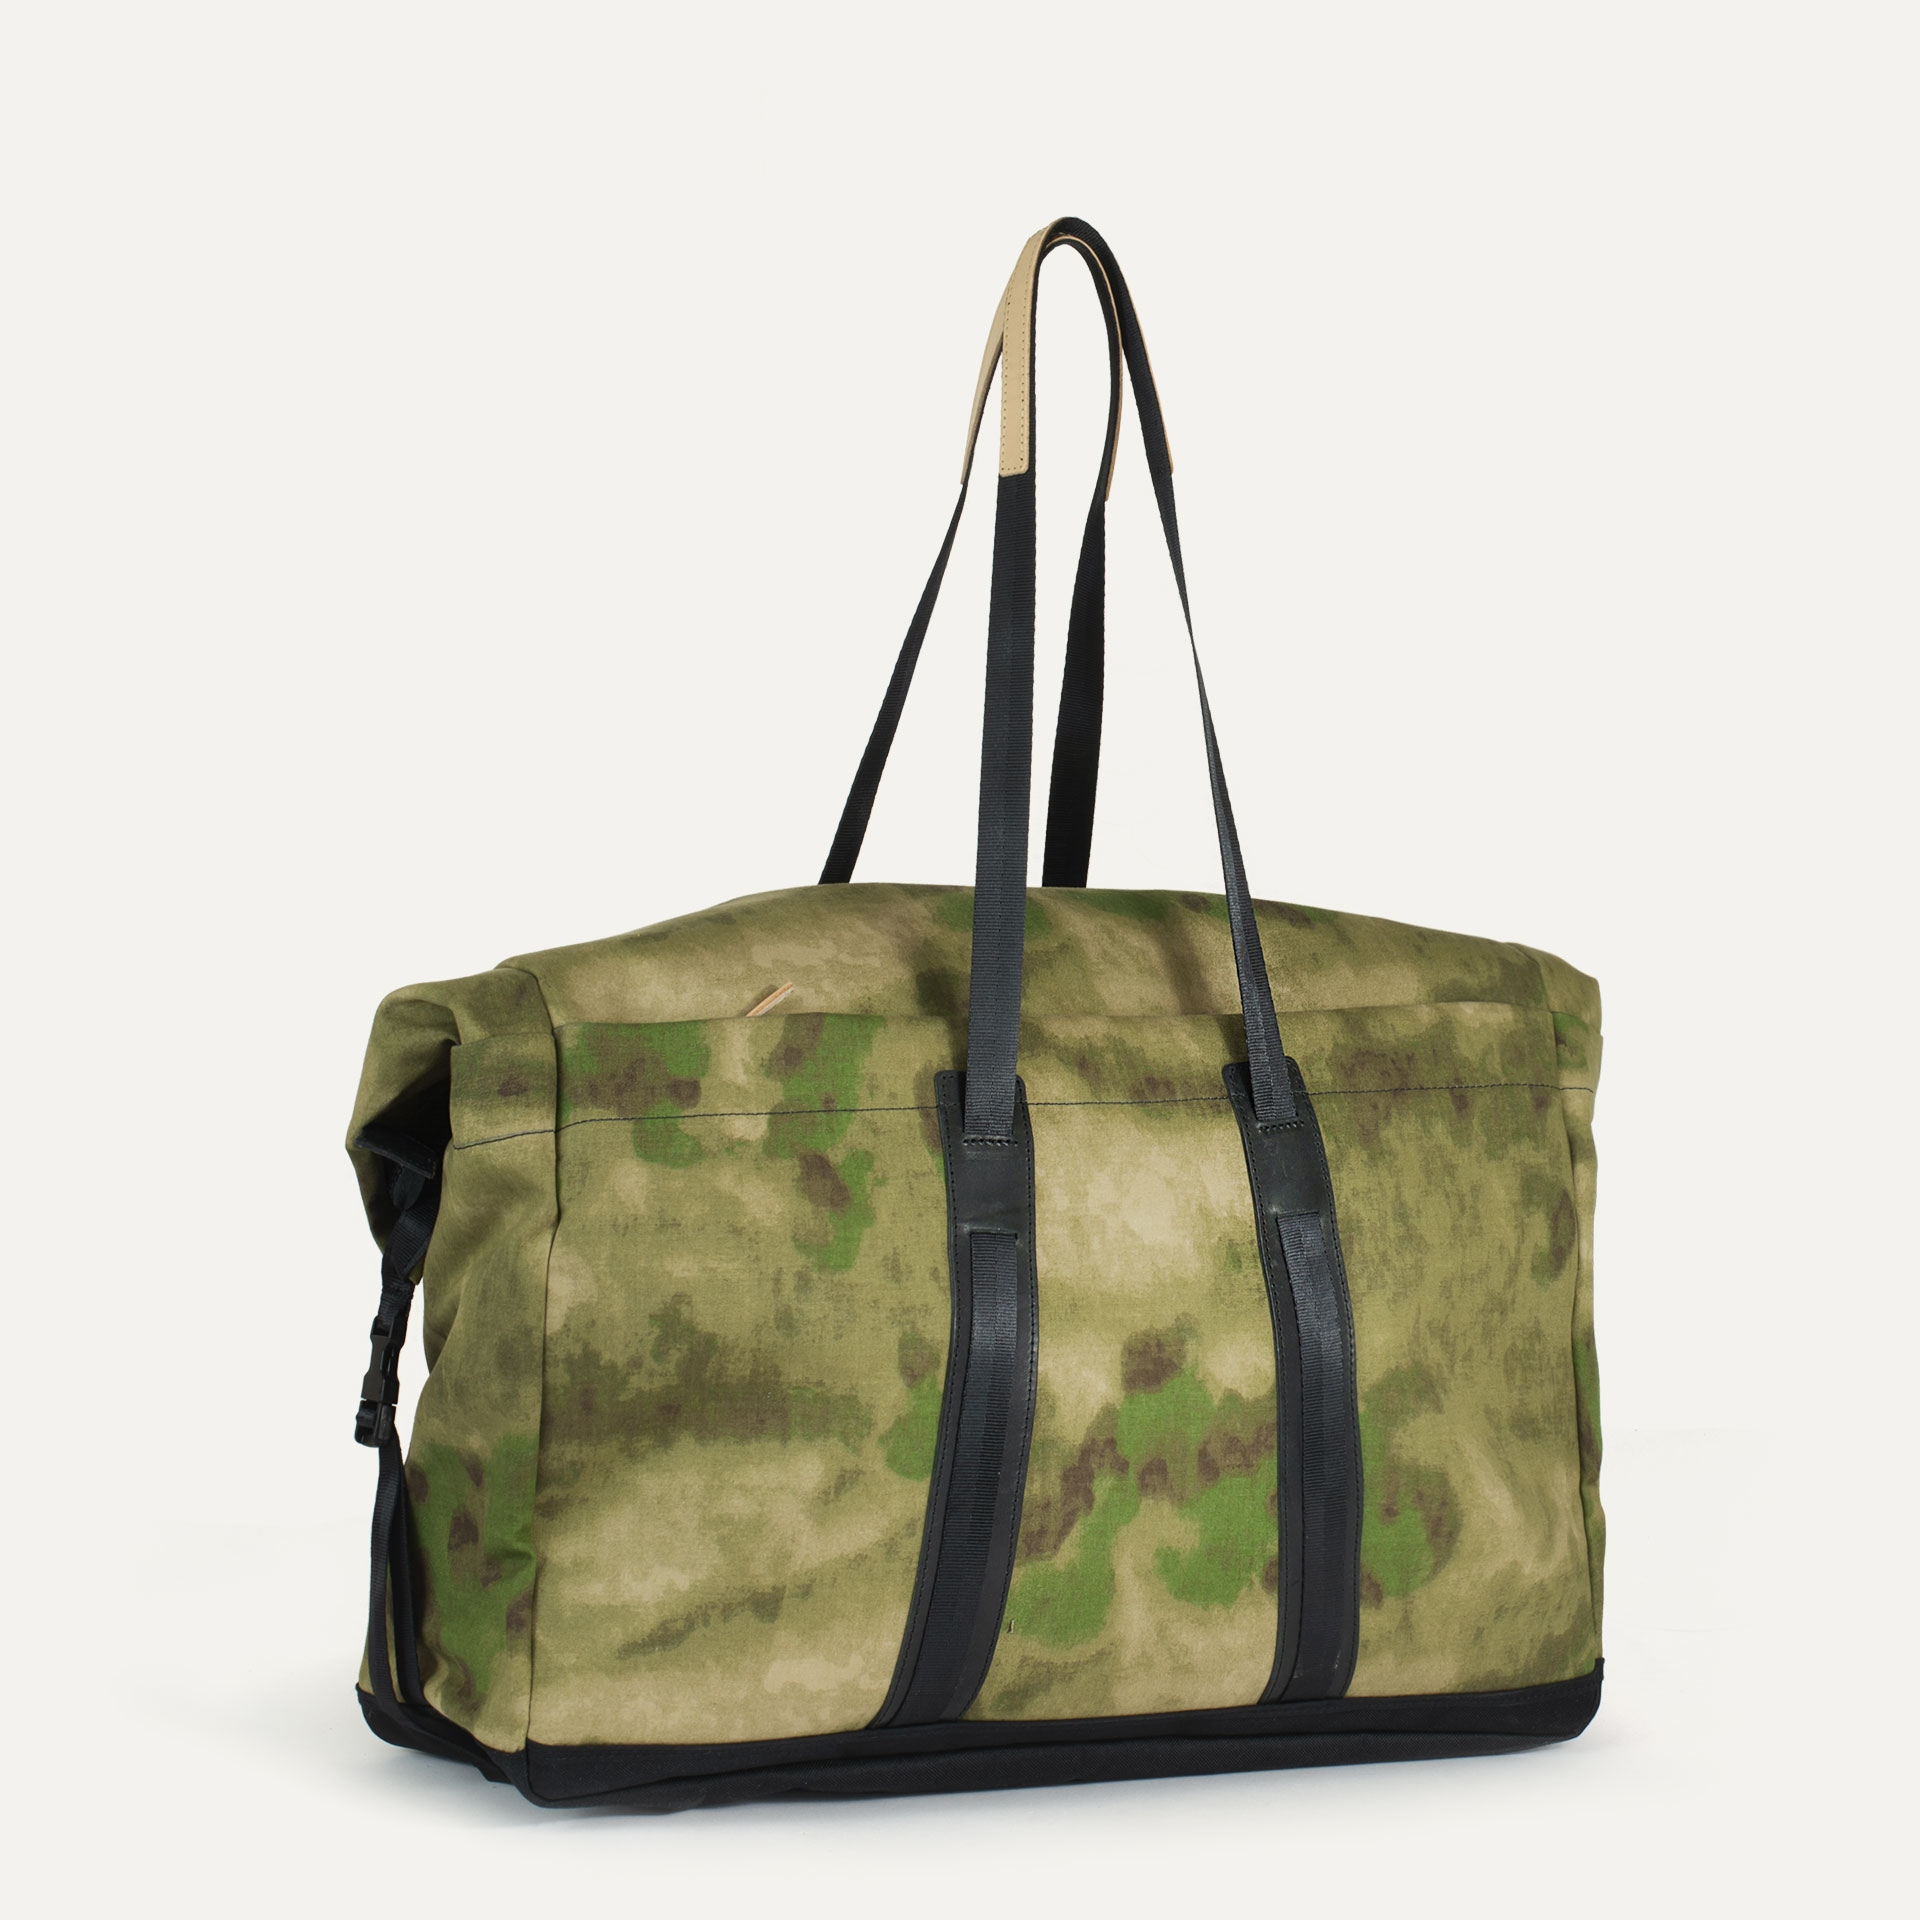 35L Baroud Travel bag - Camo (image n°3)